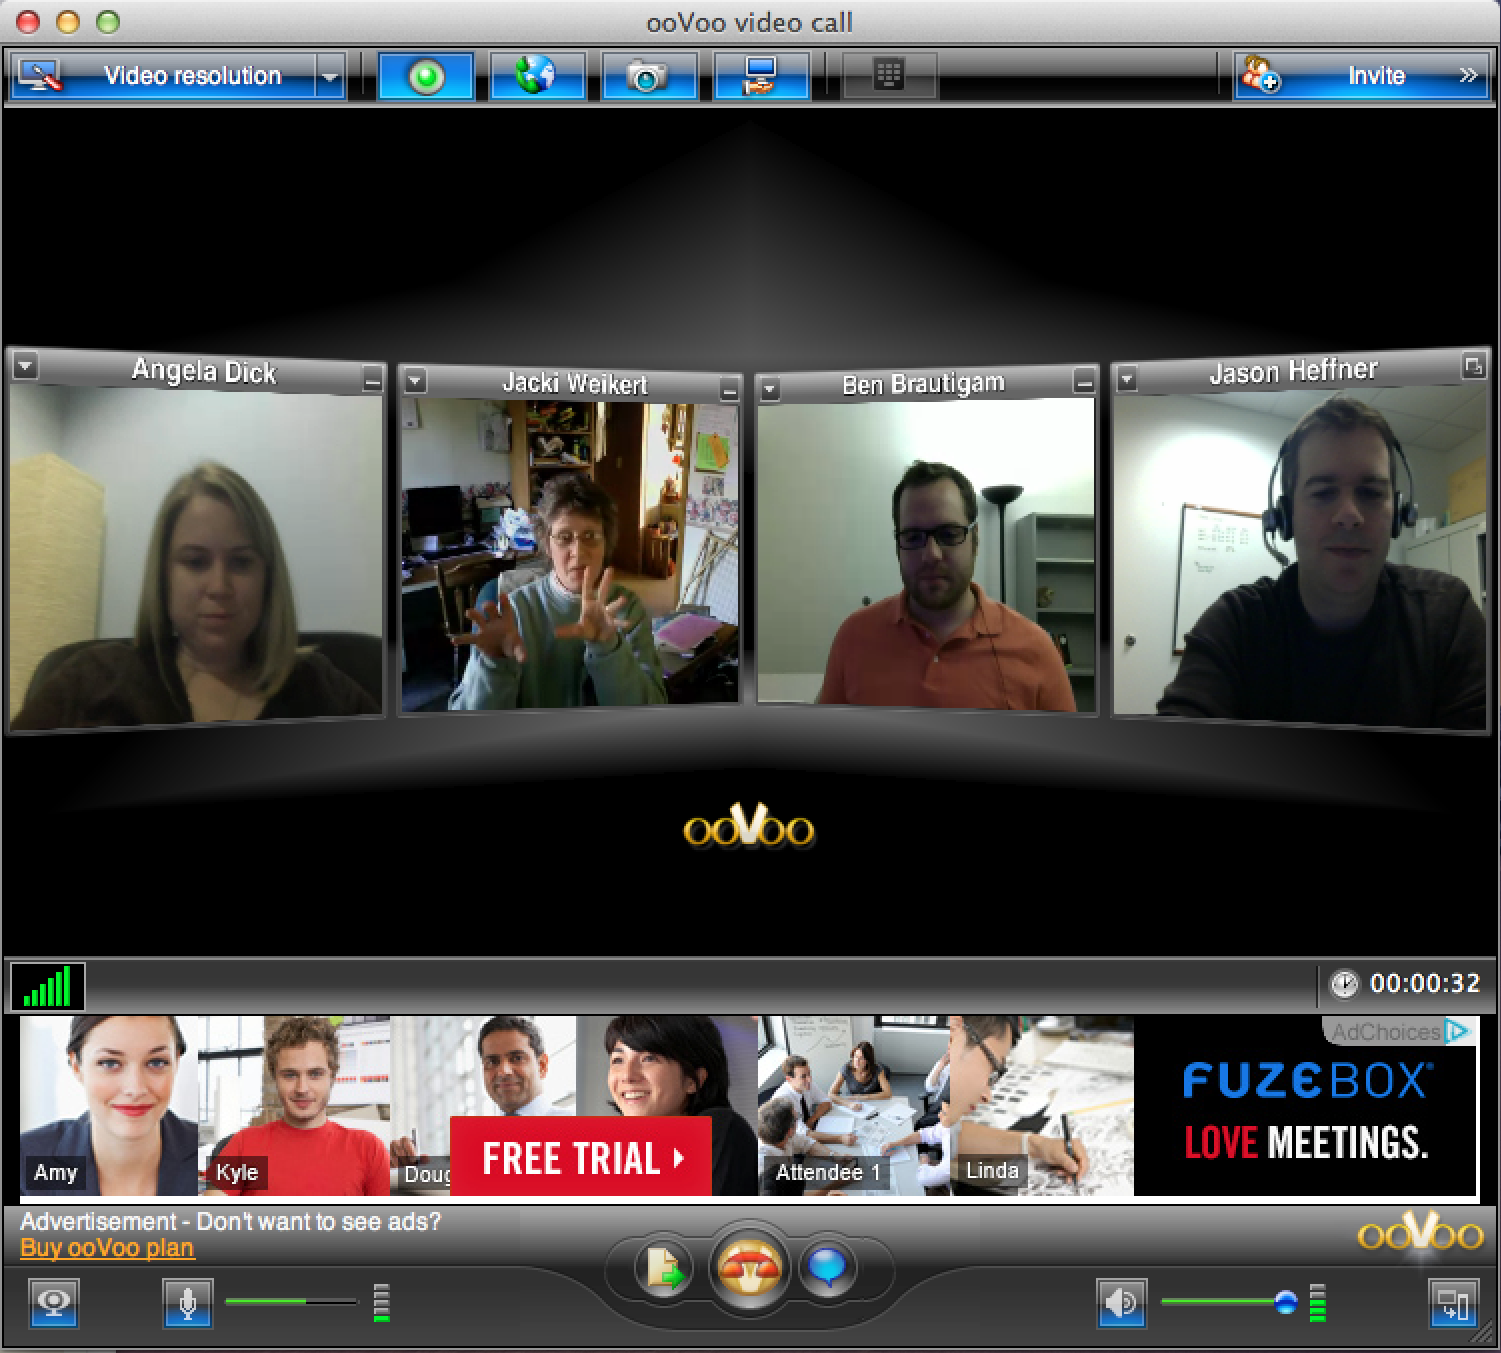 The team experimenting with the ooVoo interface.